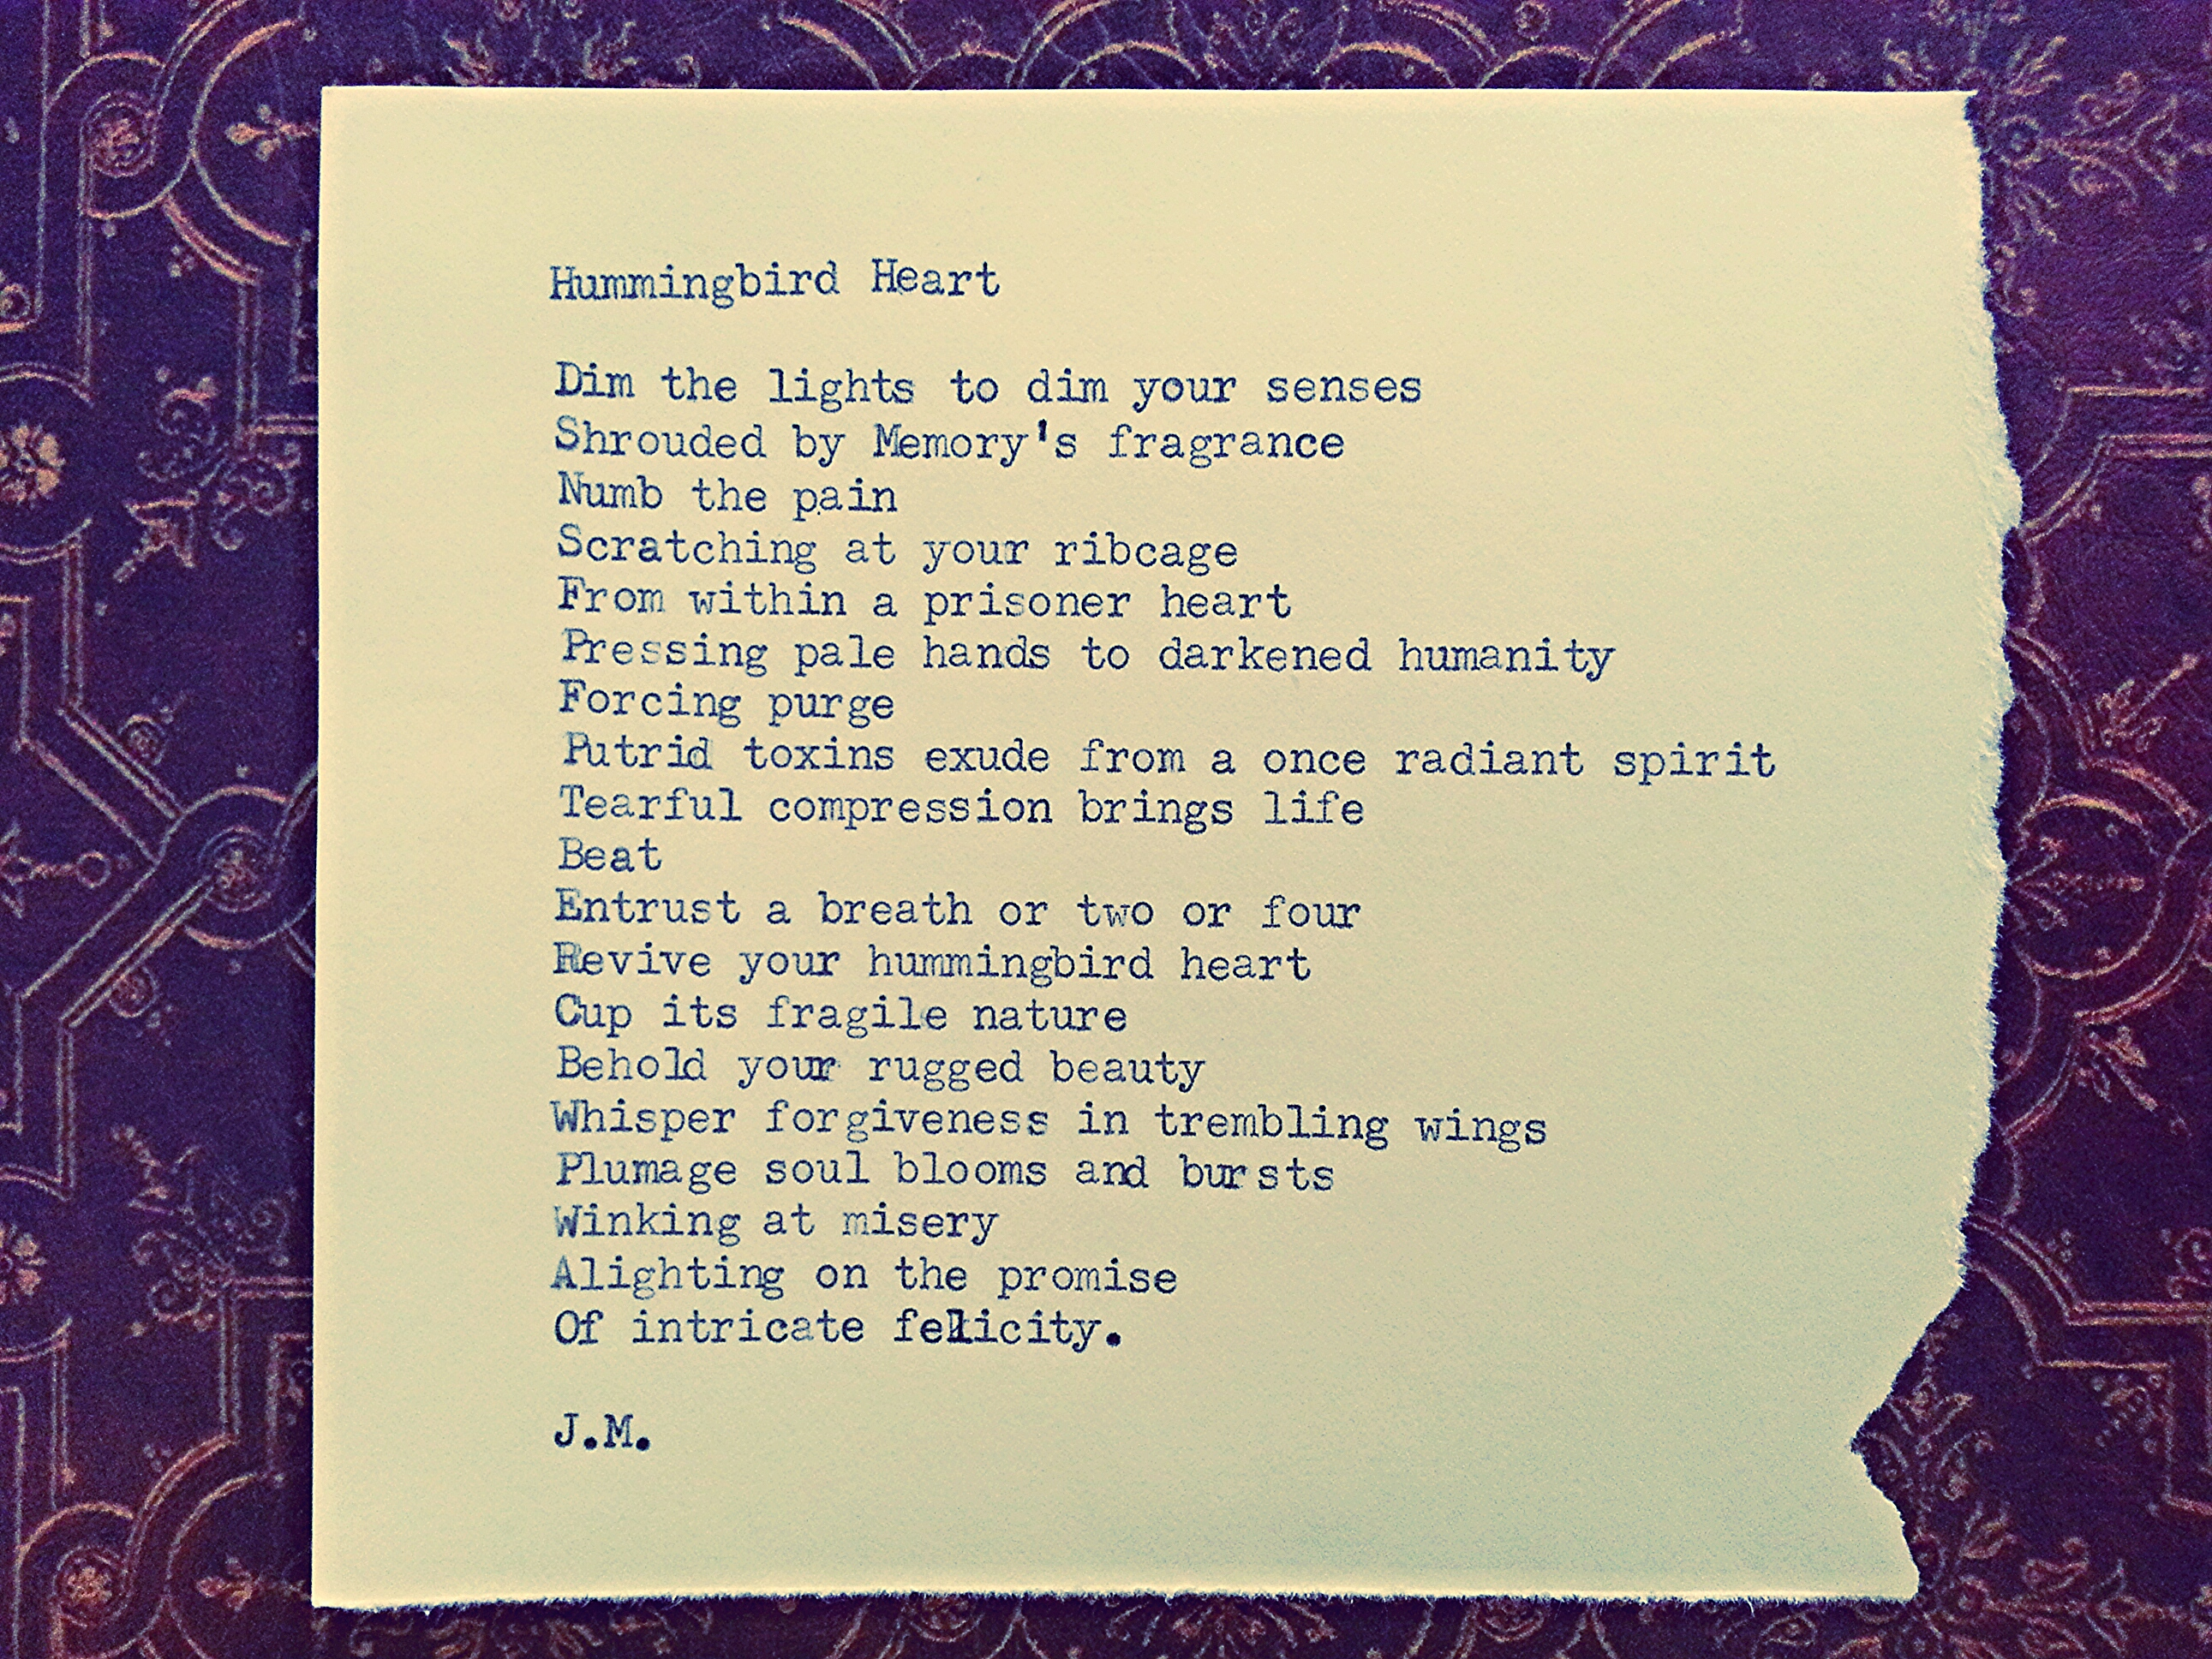 Hummingbird Heart (a poem)